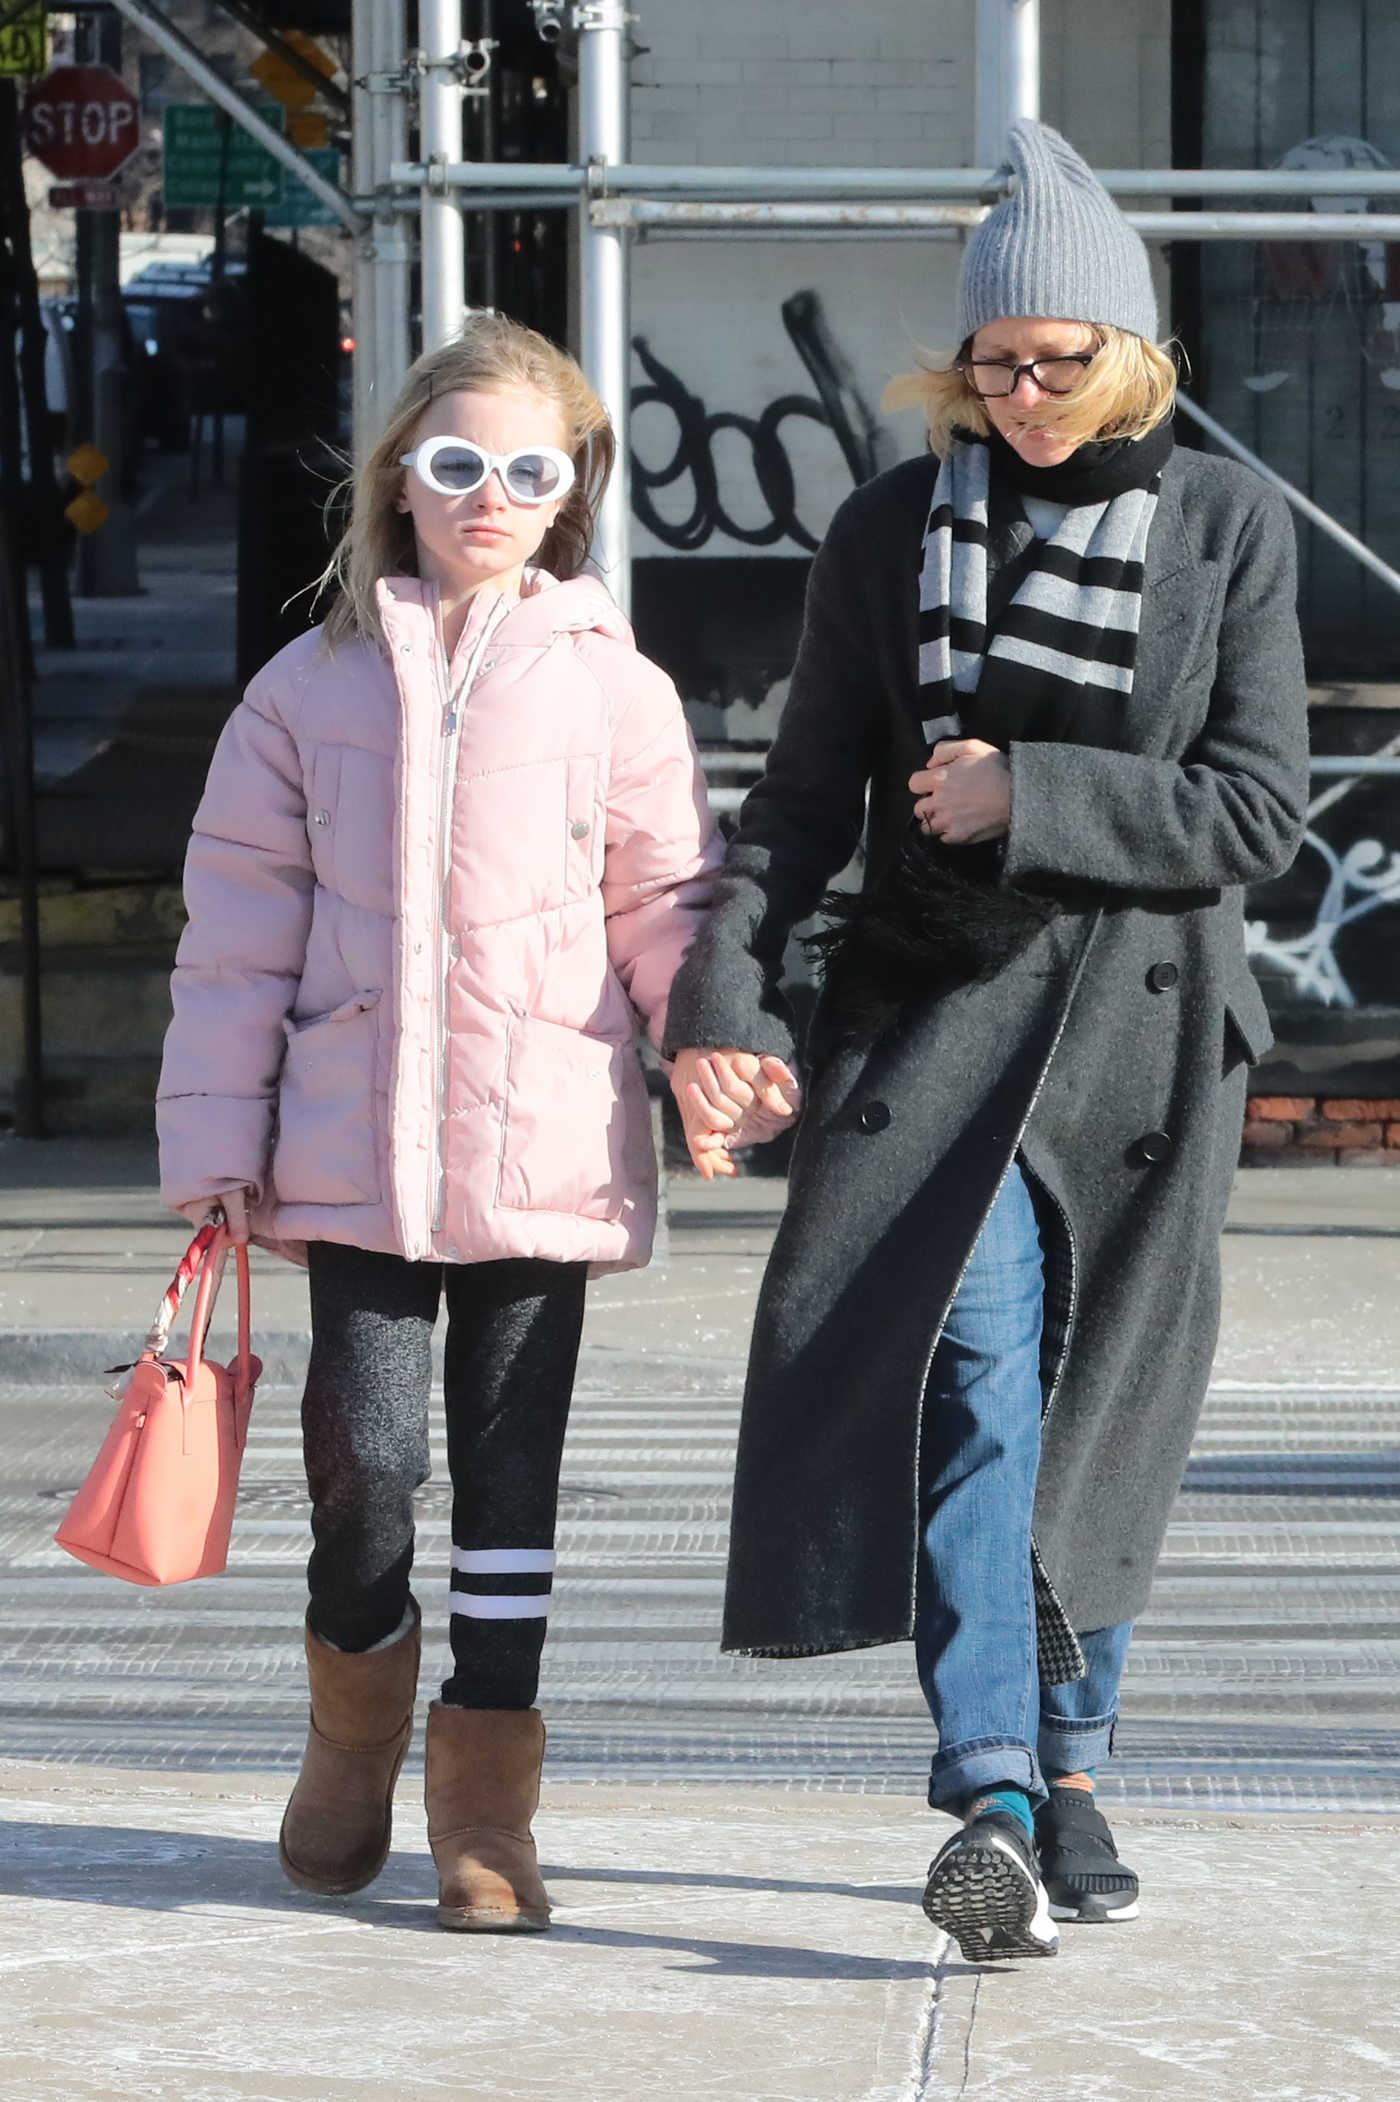 Naomi Watts in a Gray Knit Hat Was Seen Out with Her Daughter in New York 02/02/2019